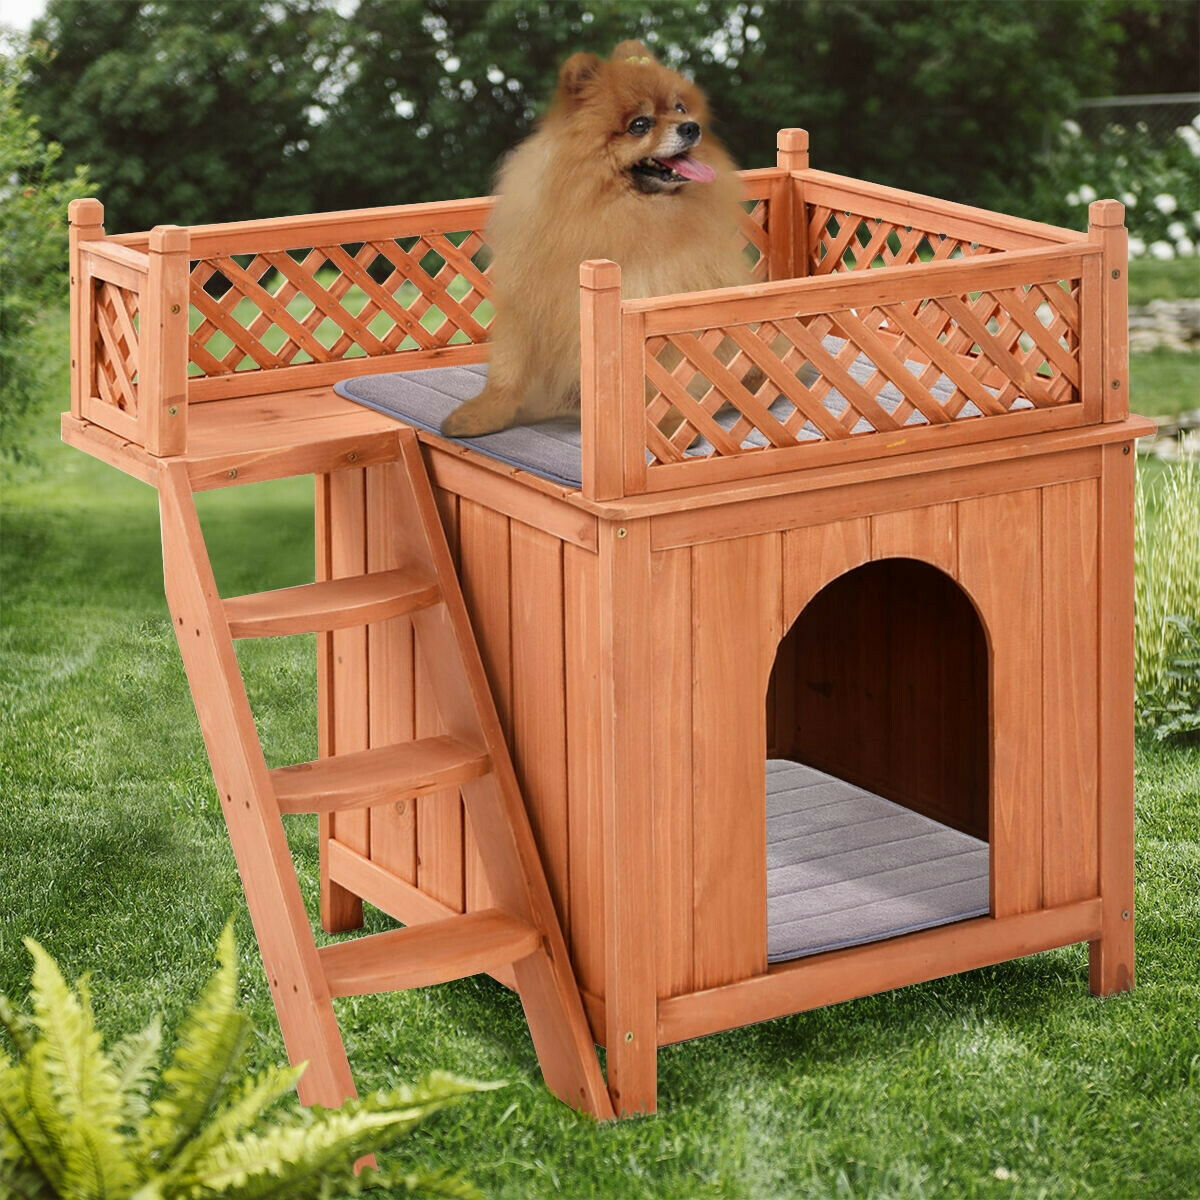 Primary image for Wooden Dog House Puppy Pet Raised Side Ladder Balcony Removable Roof Outdoor